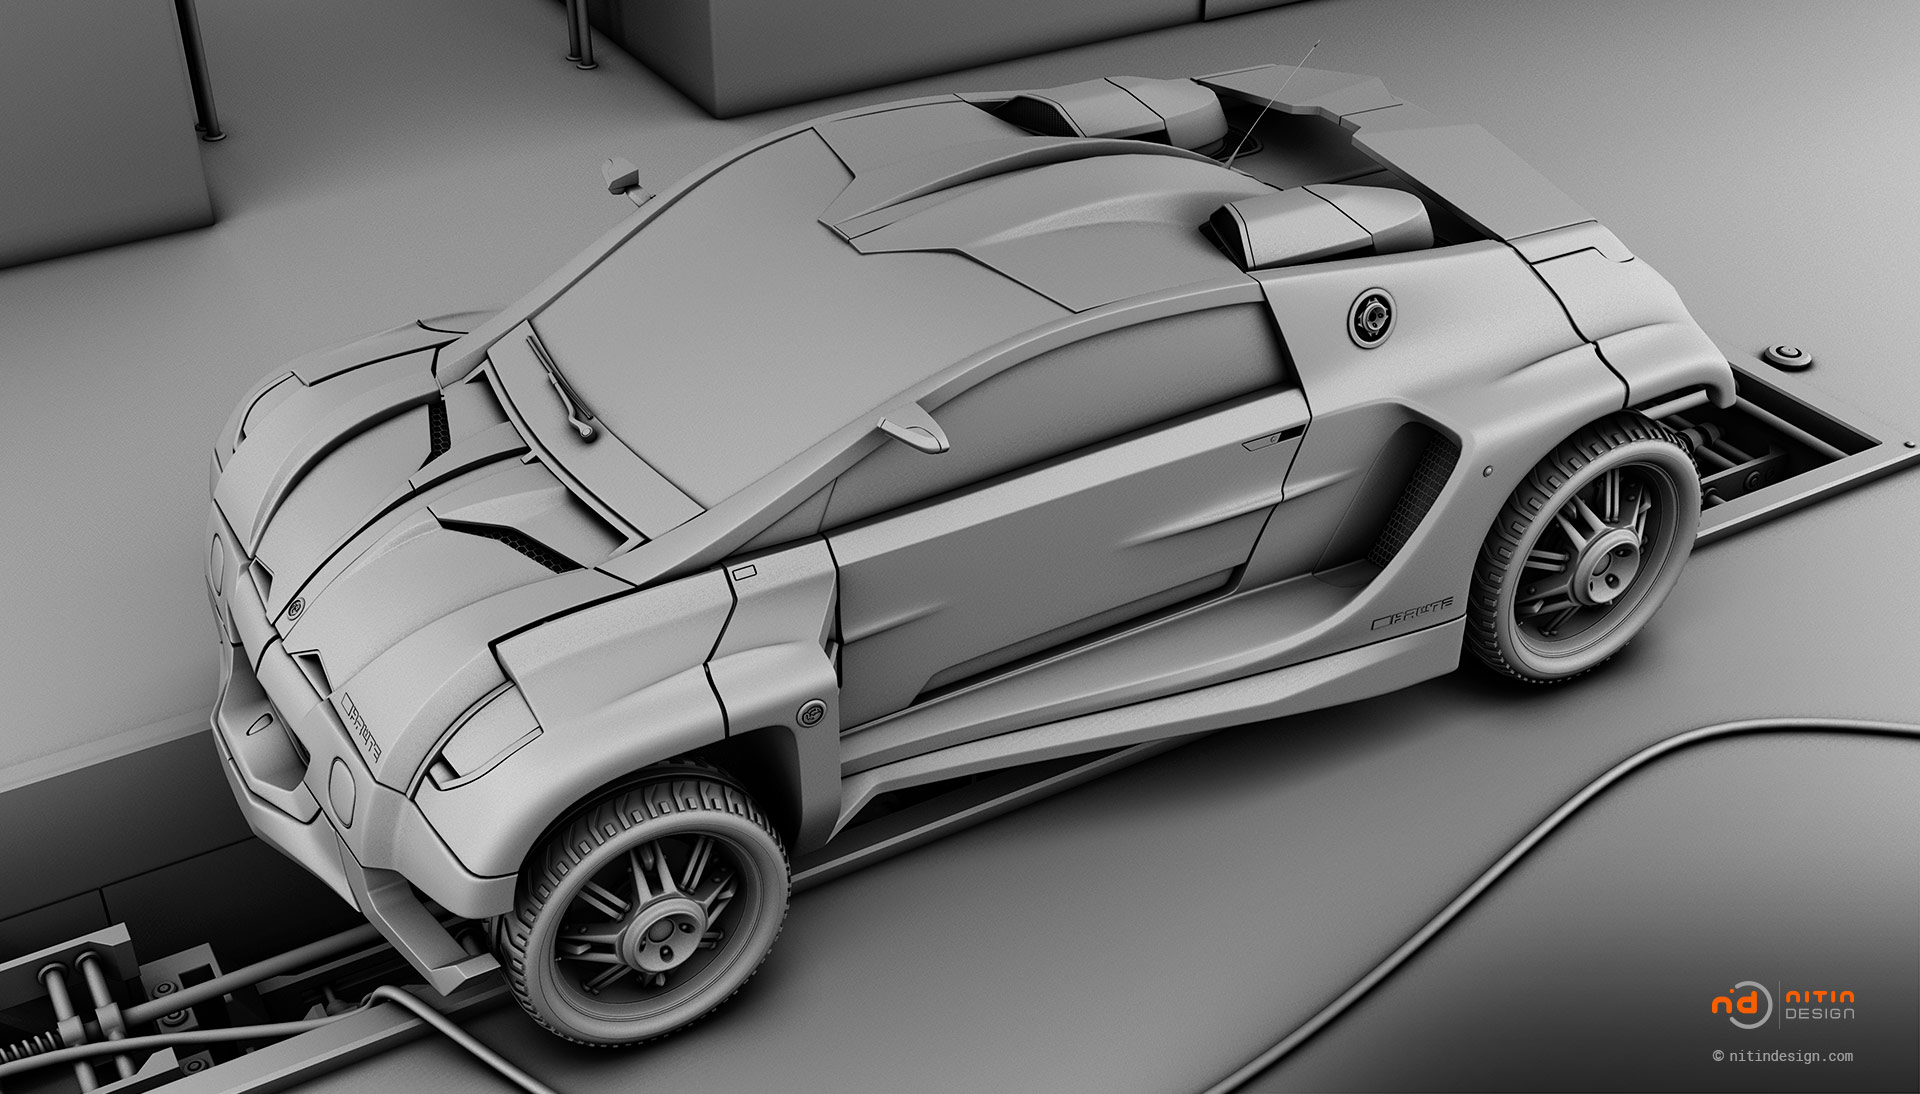 Brute-Concept-Vehicle-Nitin-Khosa-Design